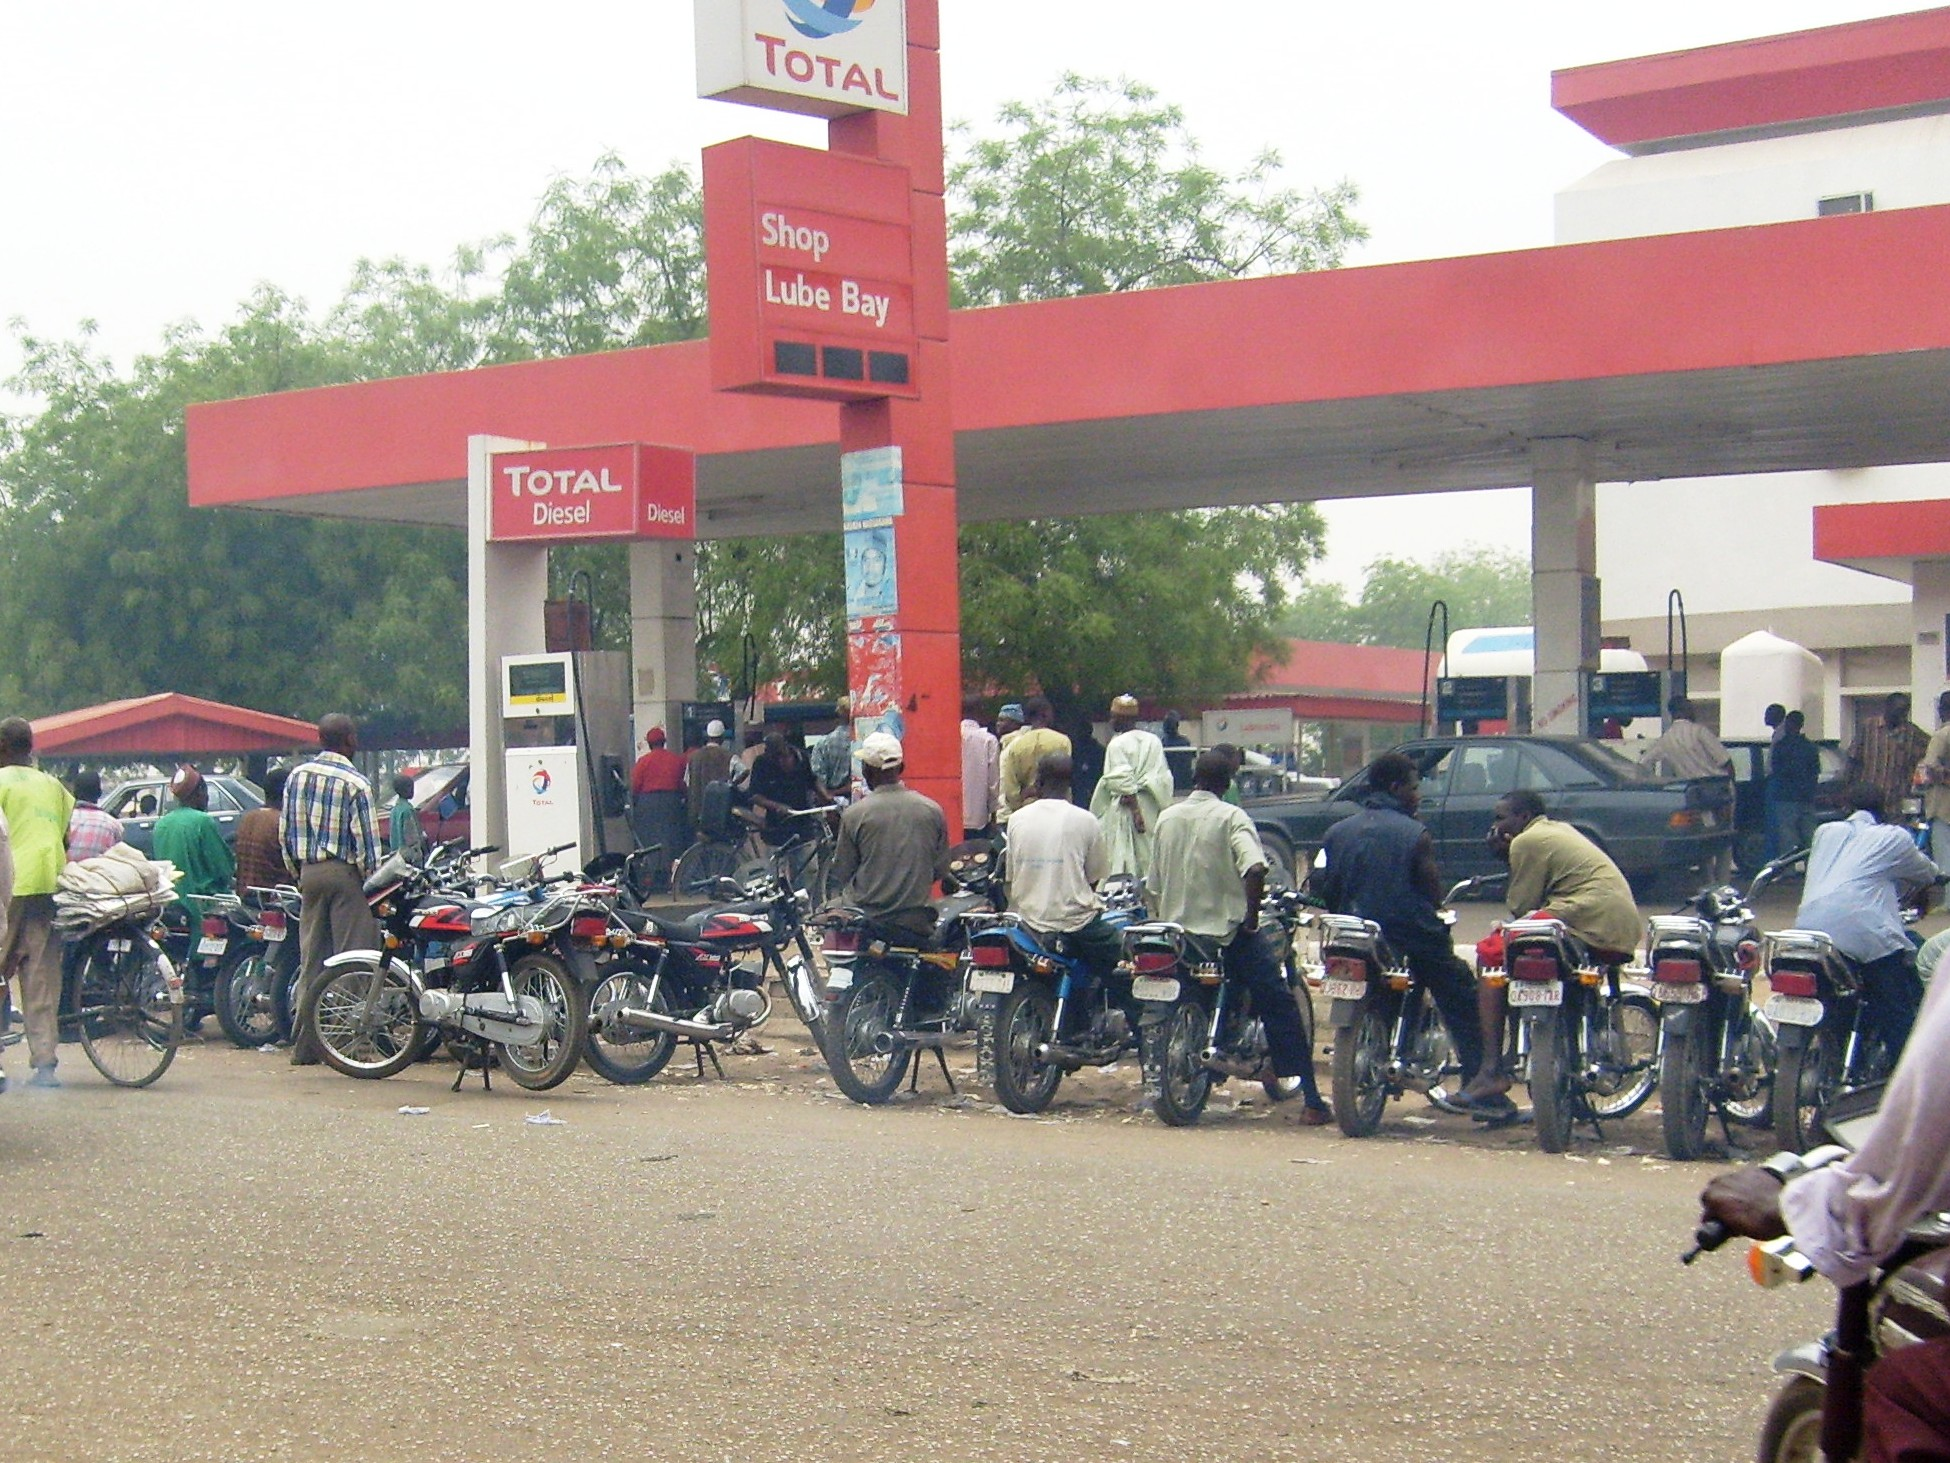 Motorcycle taxies known as 'Achabas' waiting for fuel in Kano but say many people say they can no longer afford the higher fares.